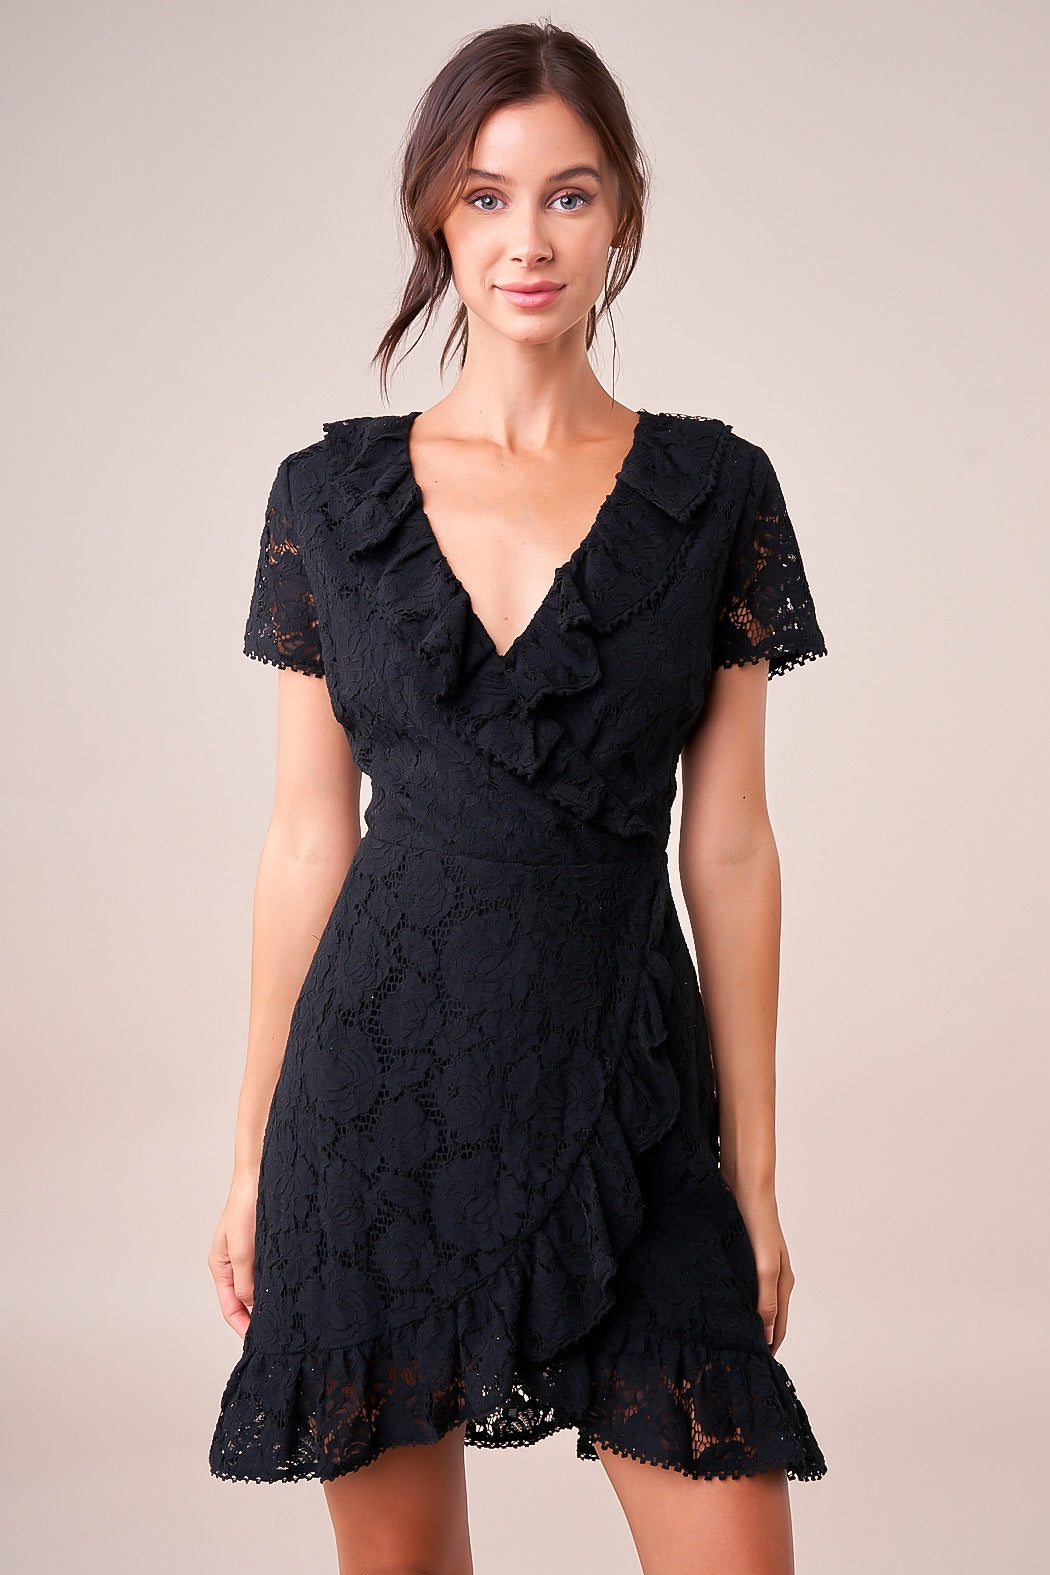 Alora Lace Wrap Dress - Black